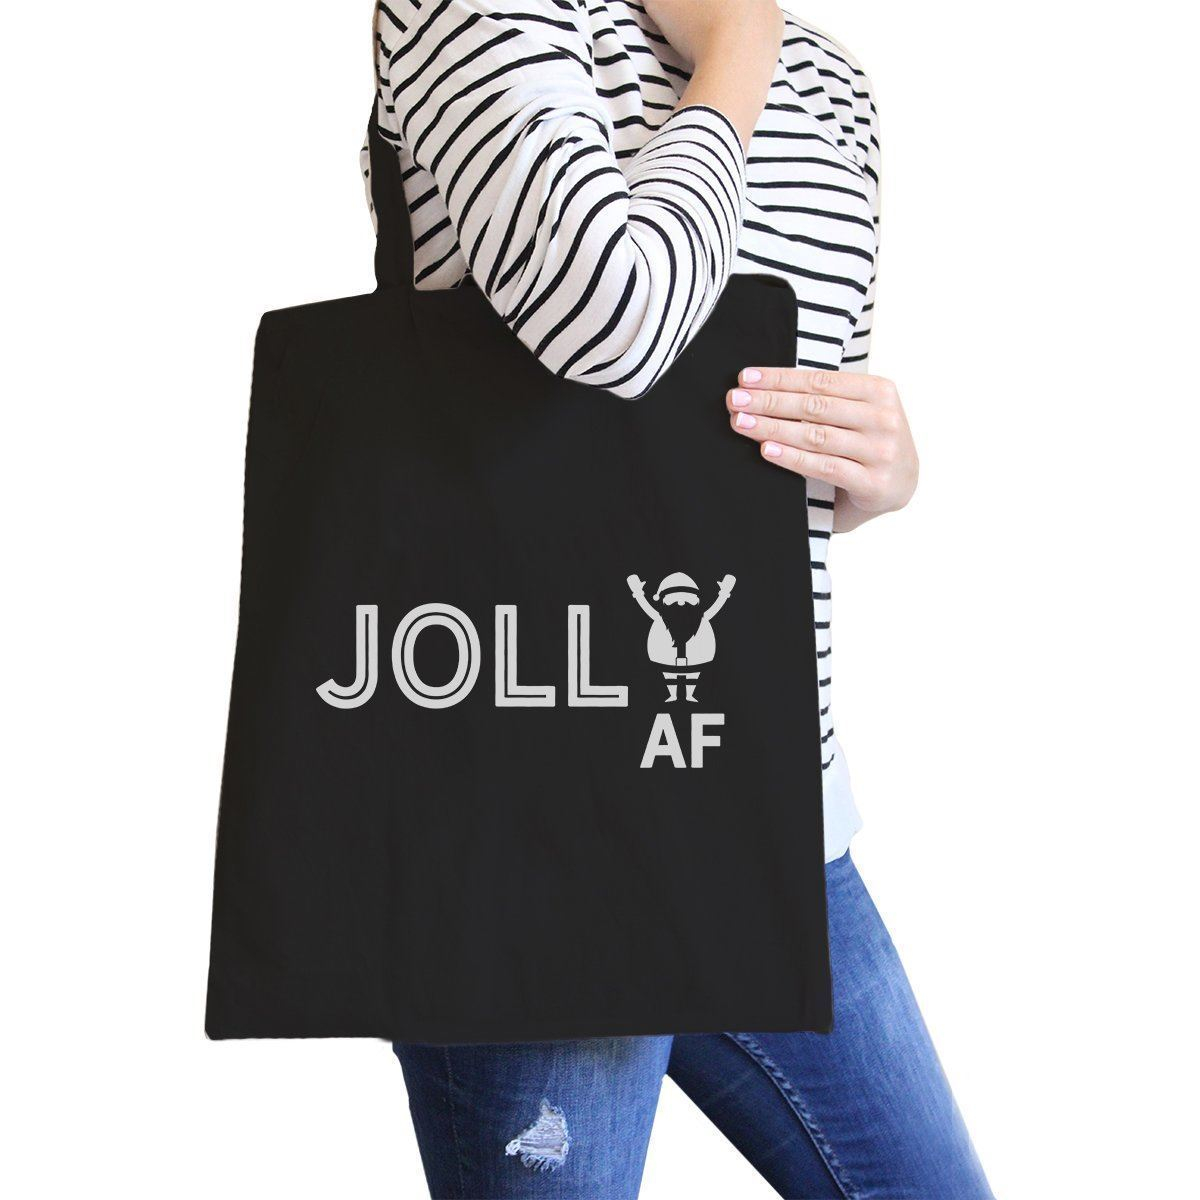 Primary image for Jolly Af Black Canvas Bags